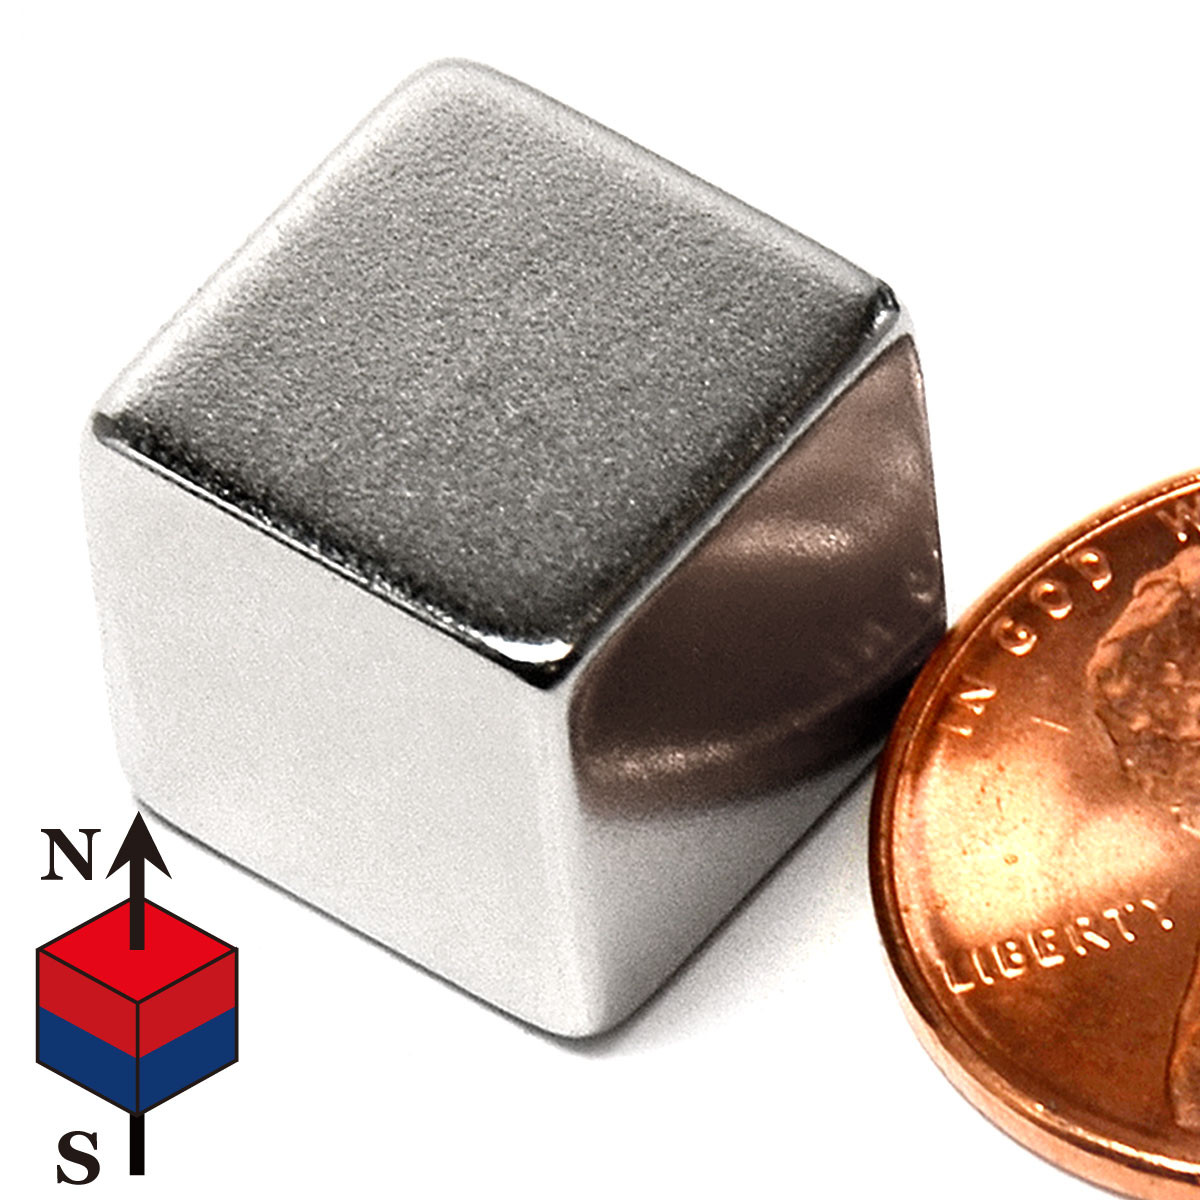 Magnet cube 1/4""